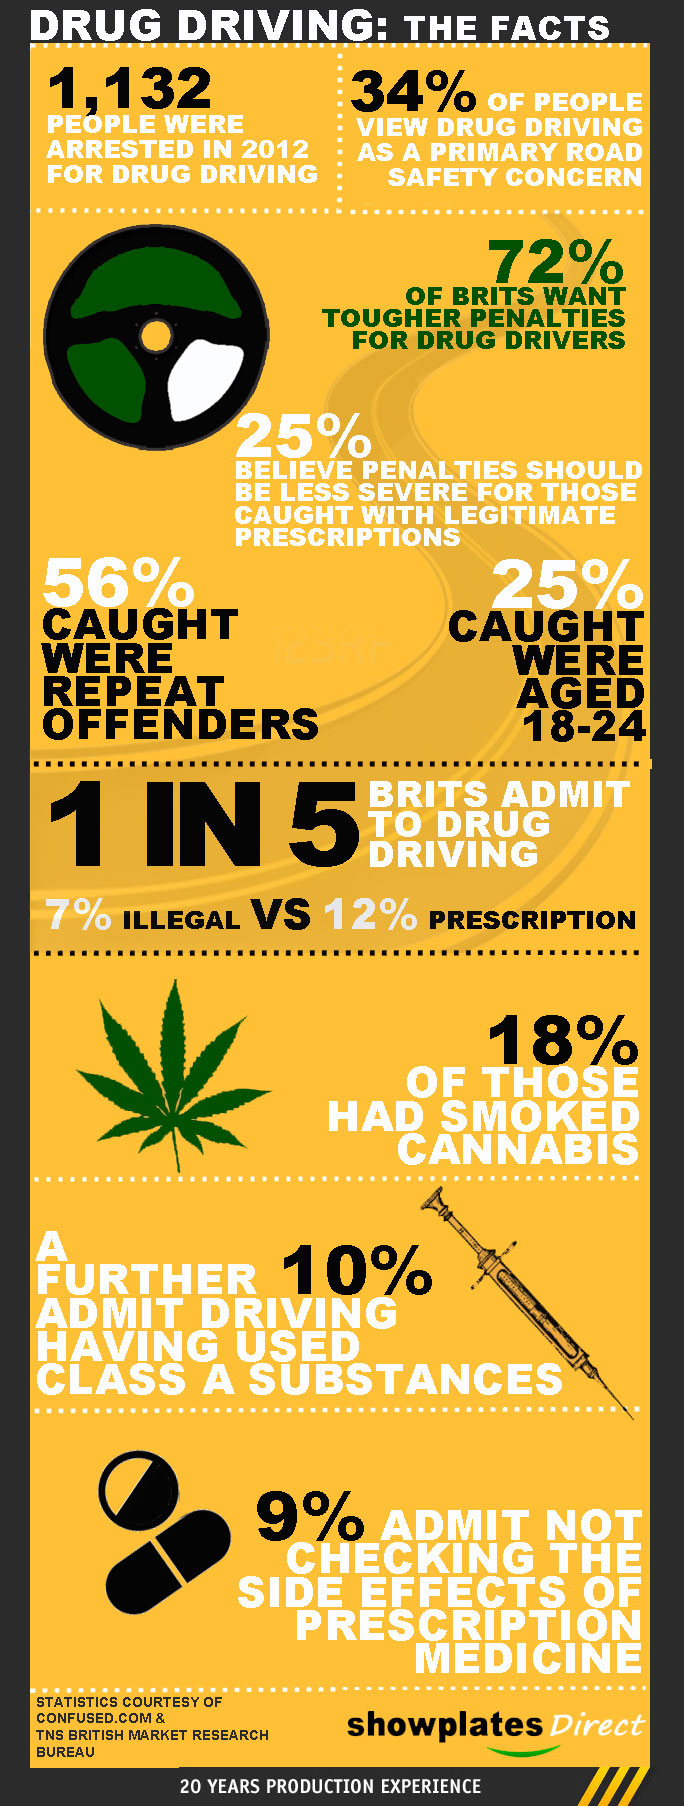 Drug Driving - The Facts